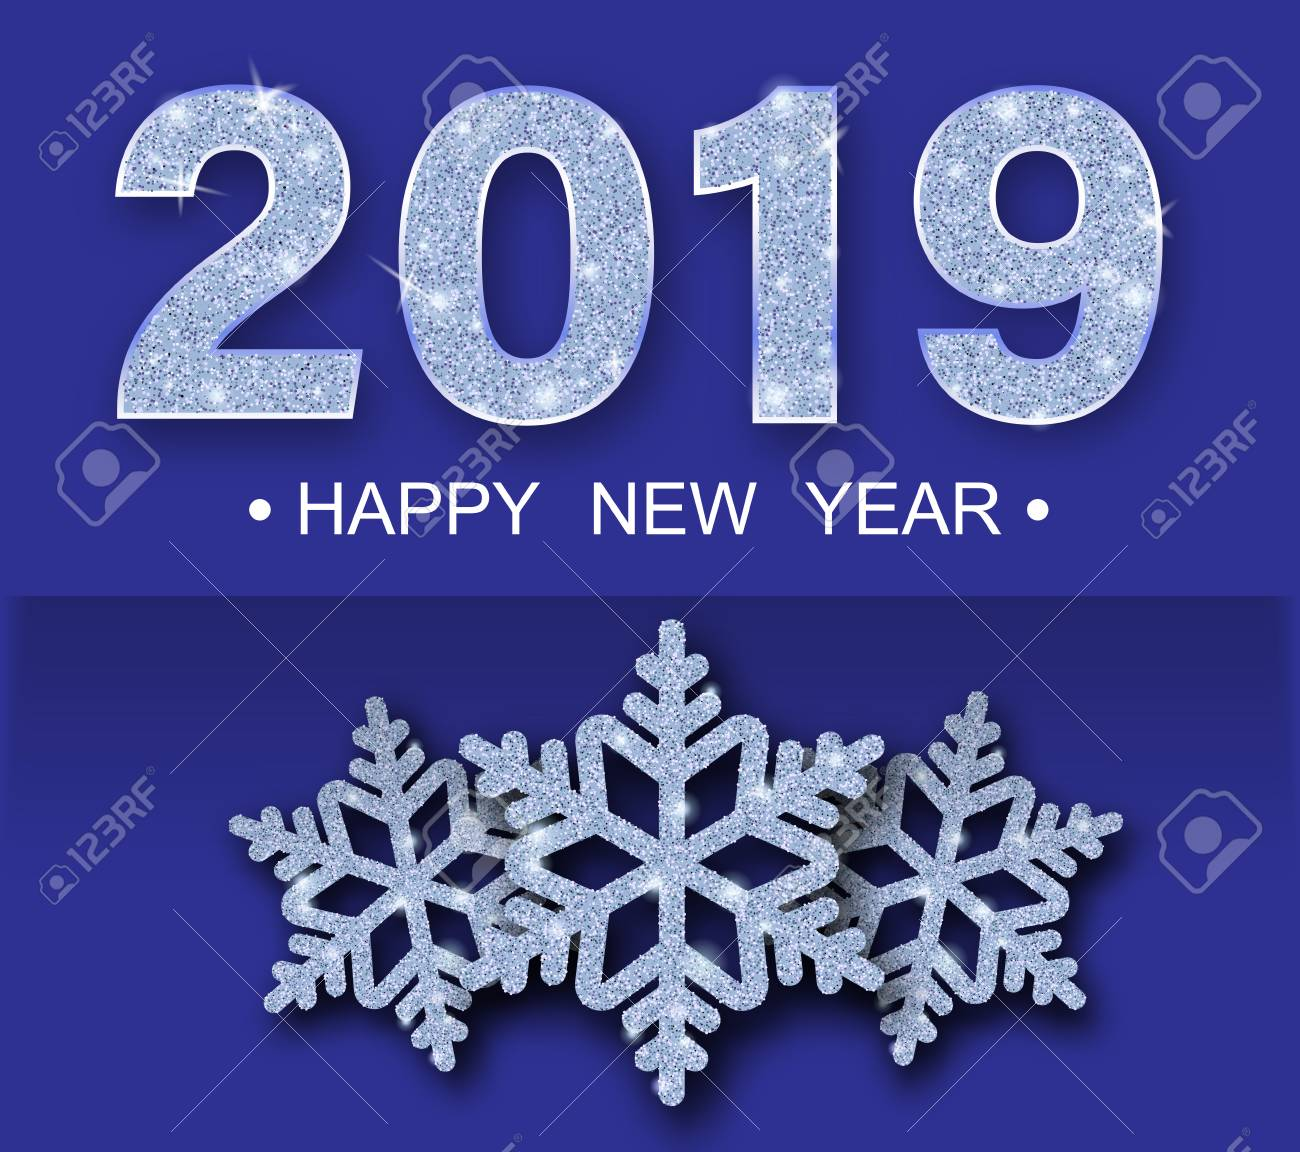 Purple Happy New Year 2019 greeting card with shiny snowflakes. Vector background. - 127702066